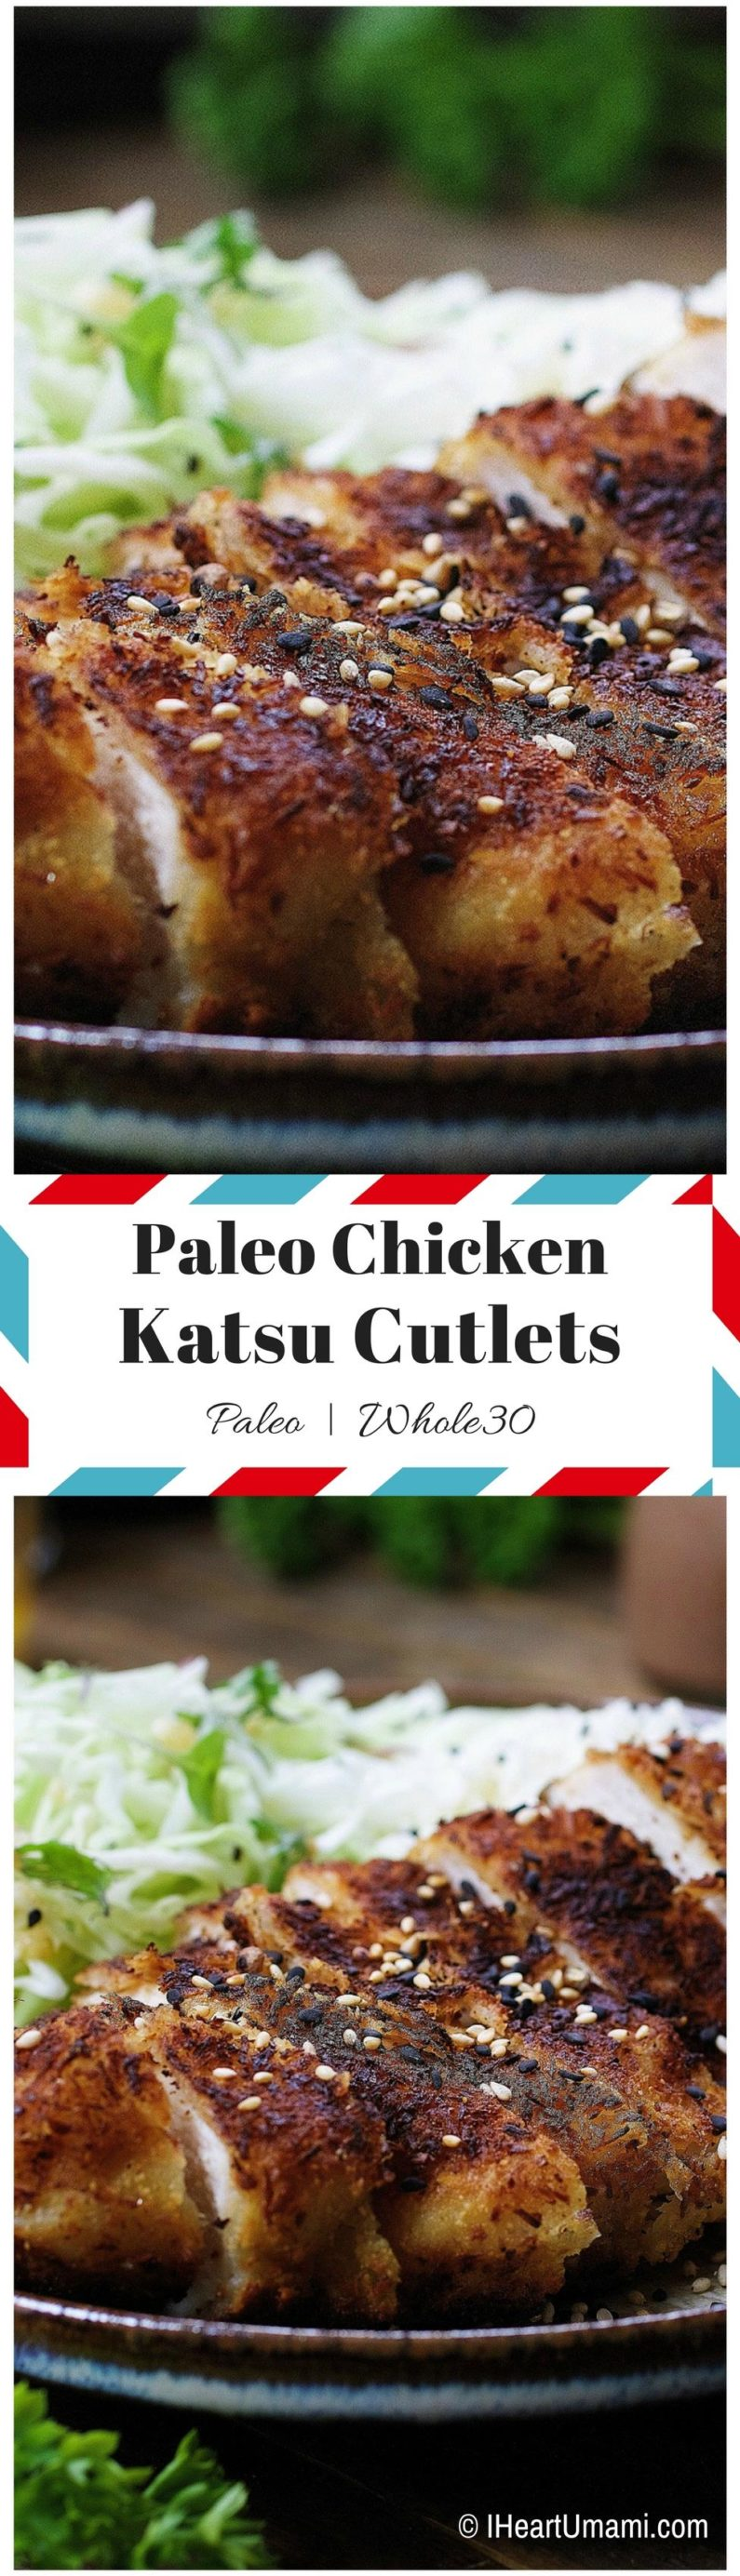 Paleo Chicken Katsu with thin shredded cabbage noodles in light Asian sesame ginger dressing. Paleo & Whole30 friendly Japanese-inspired chicken cutlets for both adults and kids to enjoy !